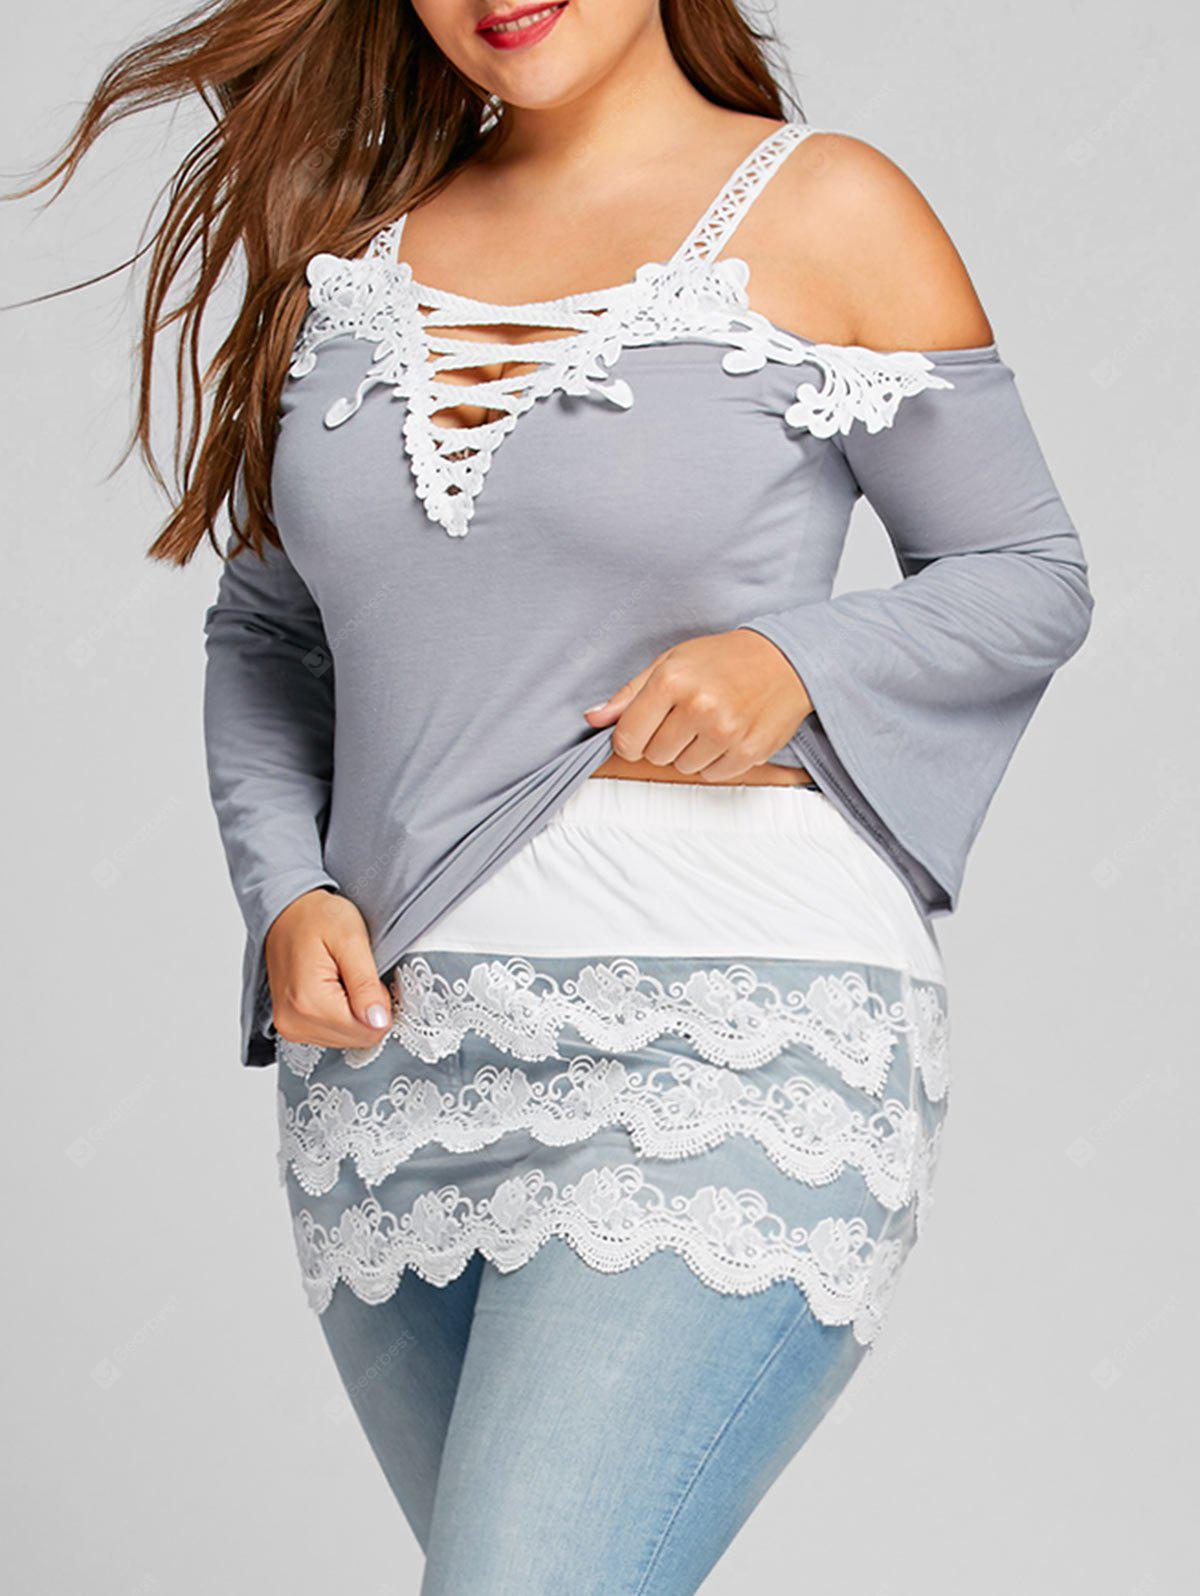 WHITE 3XL Plus Size Layered Scalloped Lace Extender Skirt